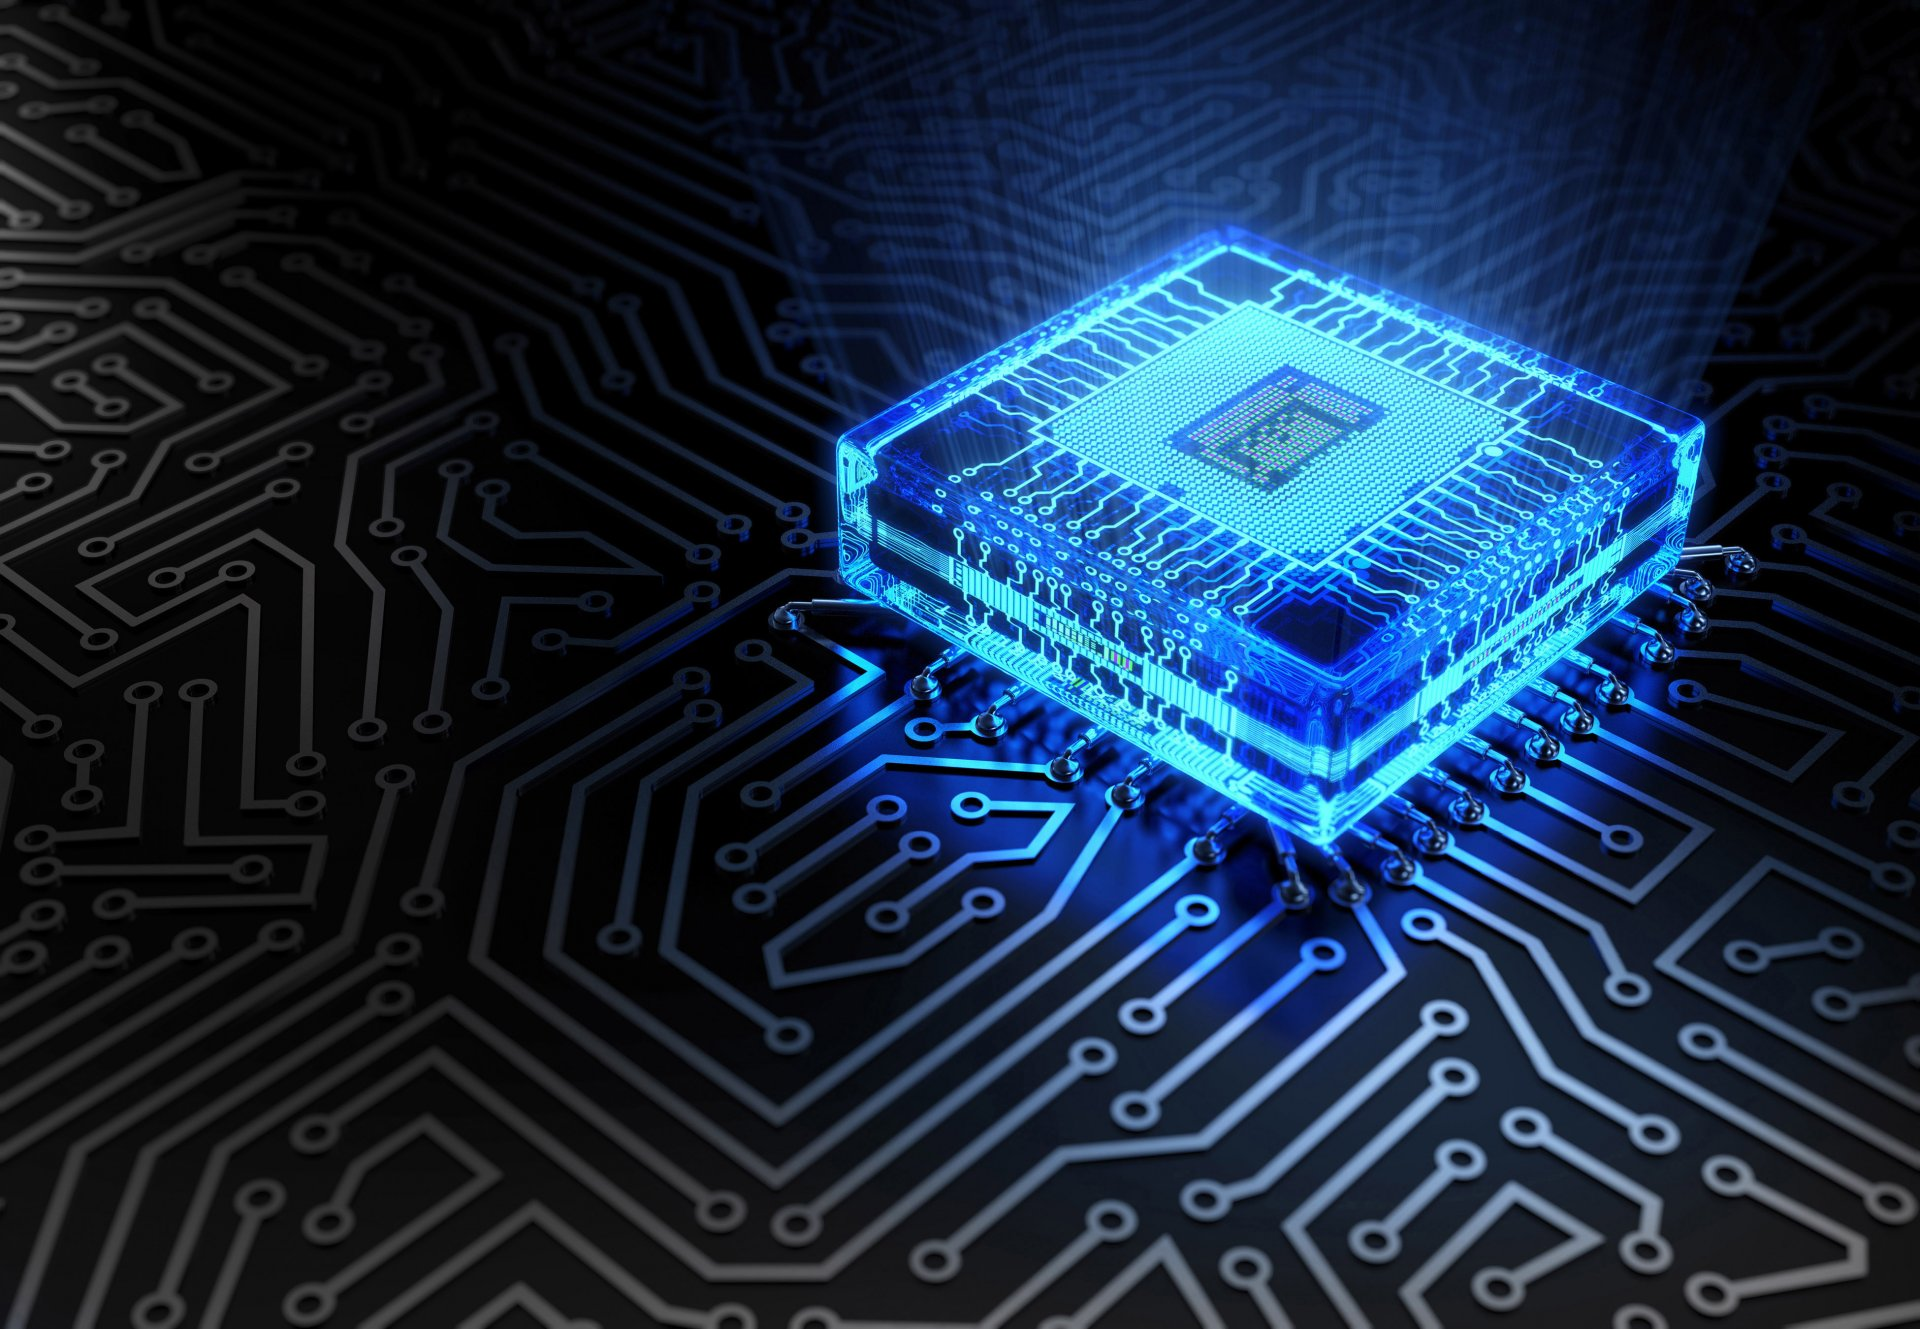 hi-tech technology chip microchip track board blue flowers glow processor cyberspace bokeh close up wallpaper.